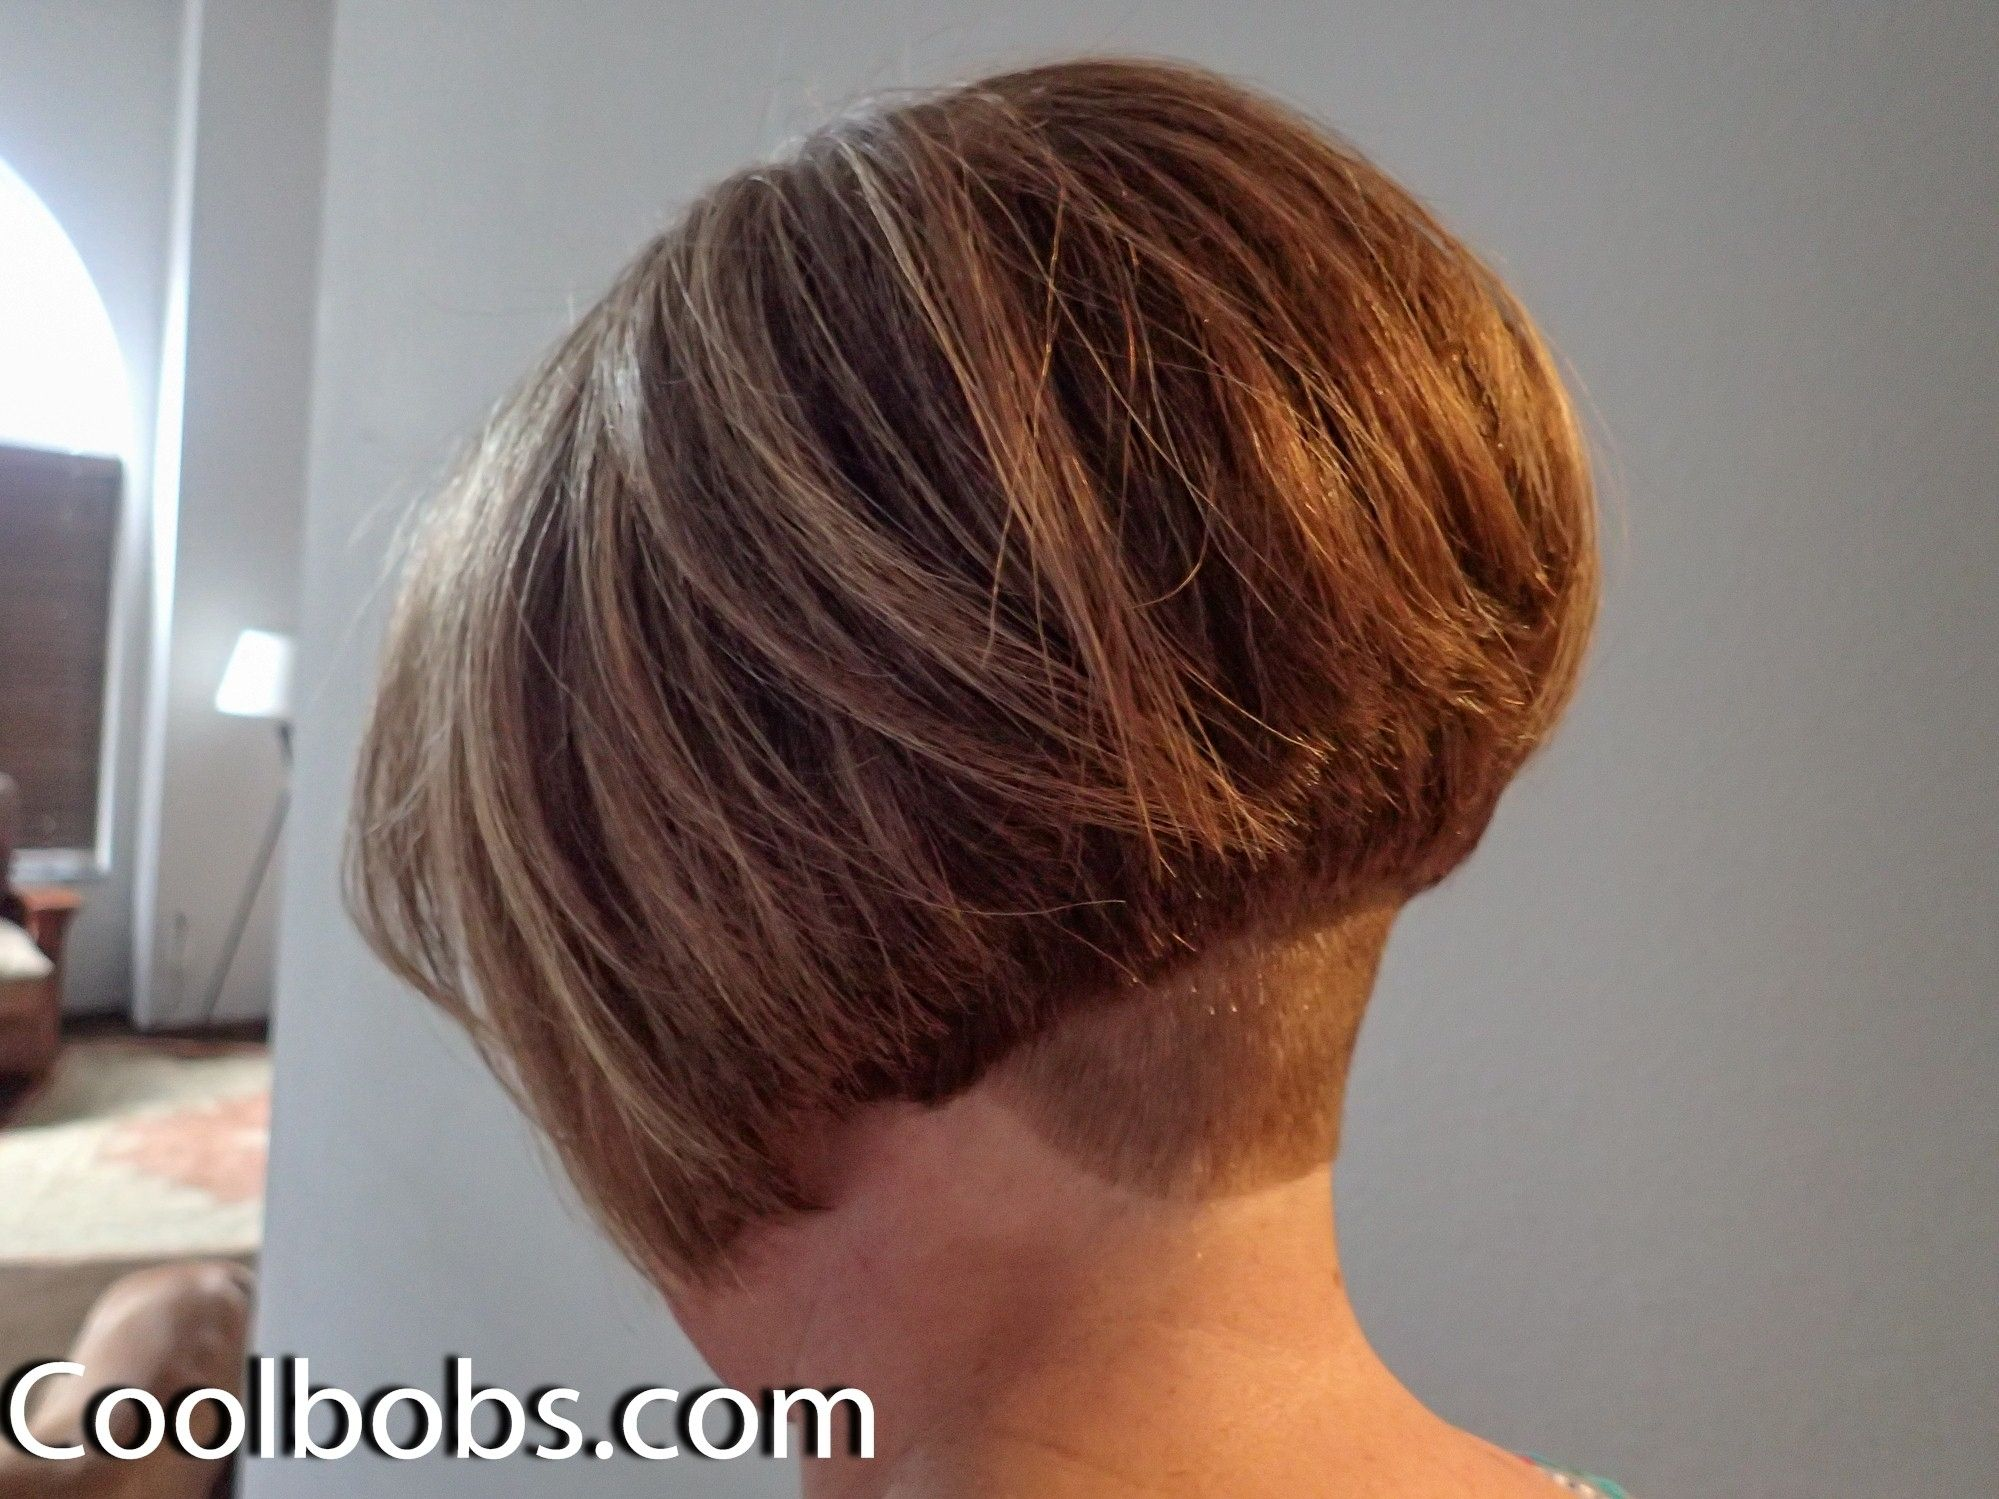 Pictures Of Wedge Haircut Front And Back View Back View Of Short Hair Styles Short Wedge Hairstyles Wedge Hairstyles